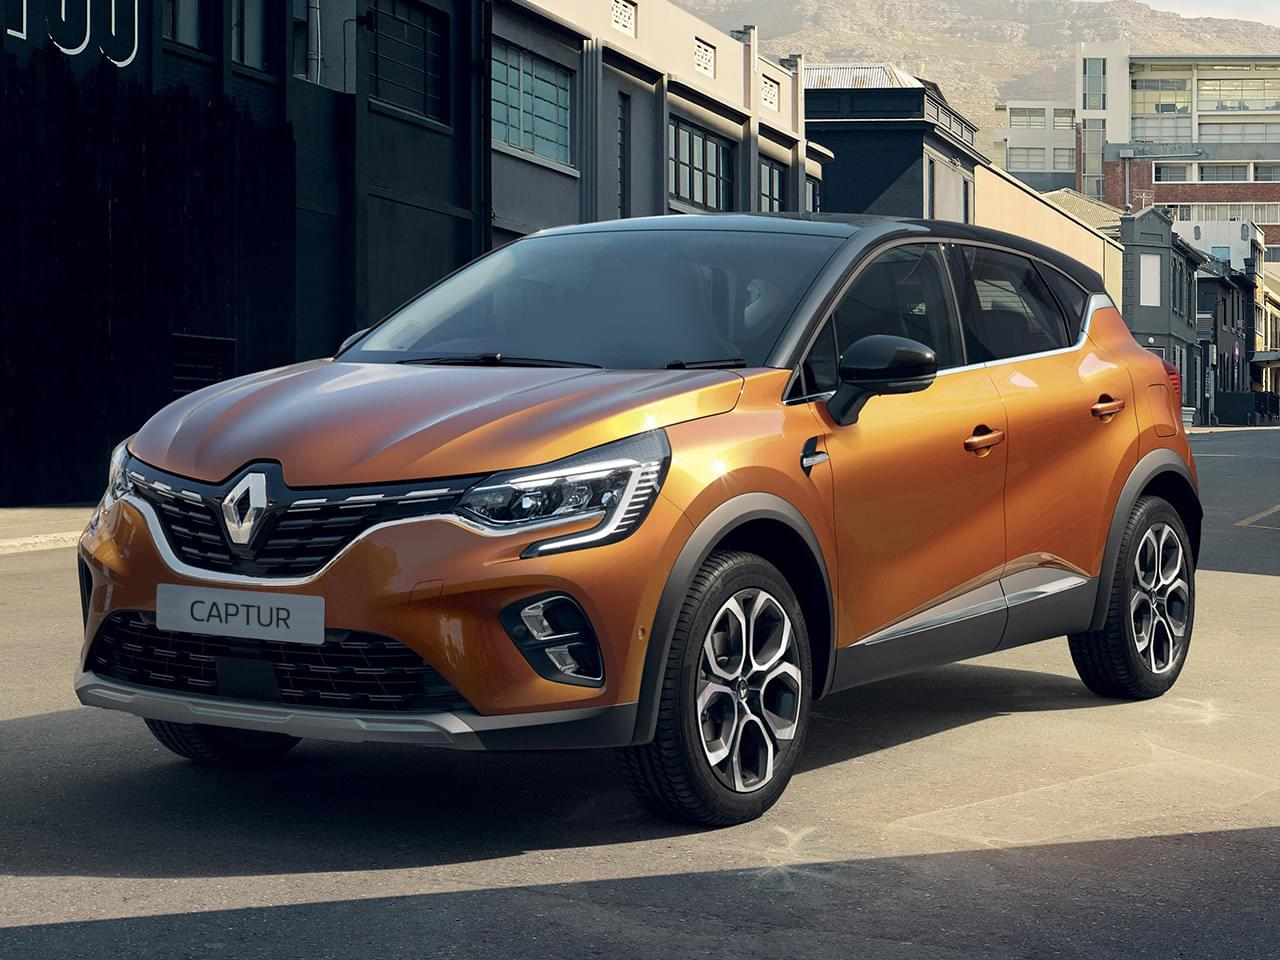 Renault Captur Intens E-Tech Plug-in Hybrid 160 Automatik